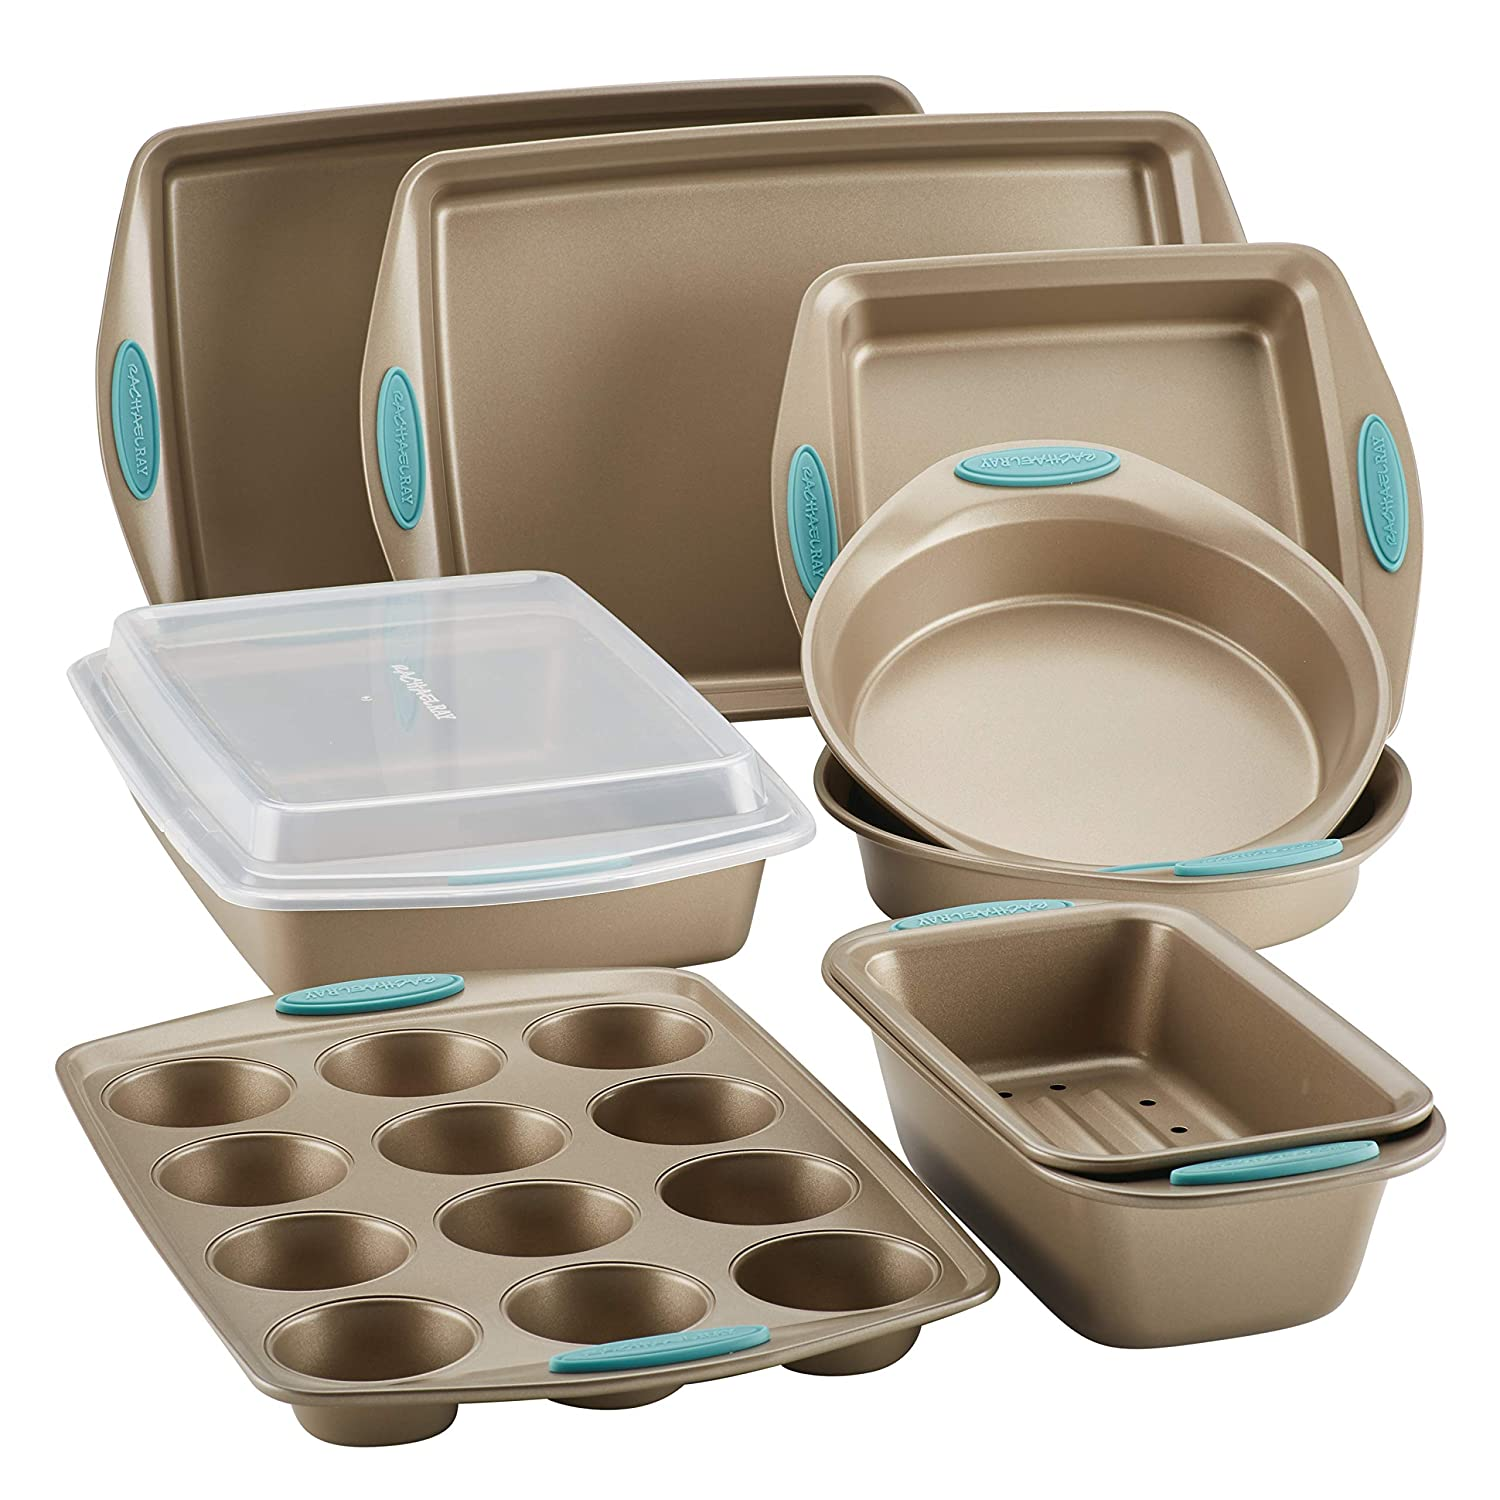 Rachael Ray 47578 10-Piece Steel Bakeware Set, Agave Blue